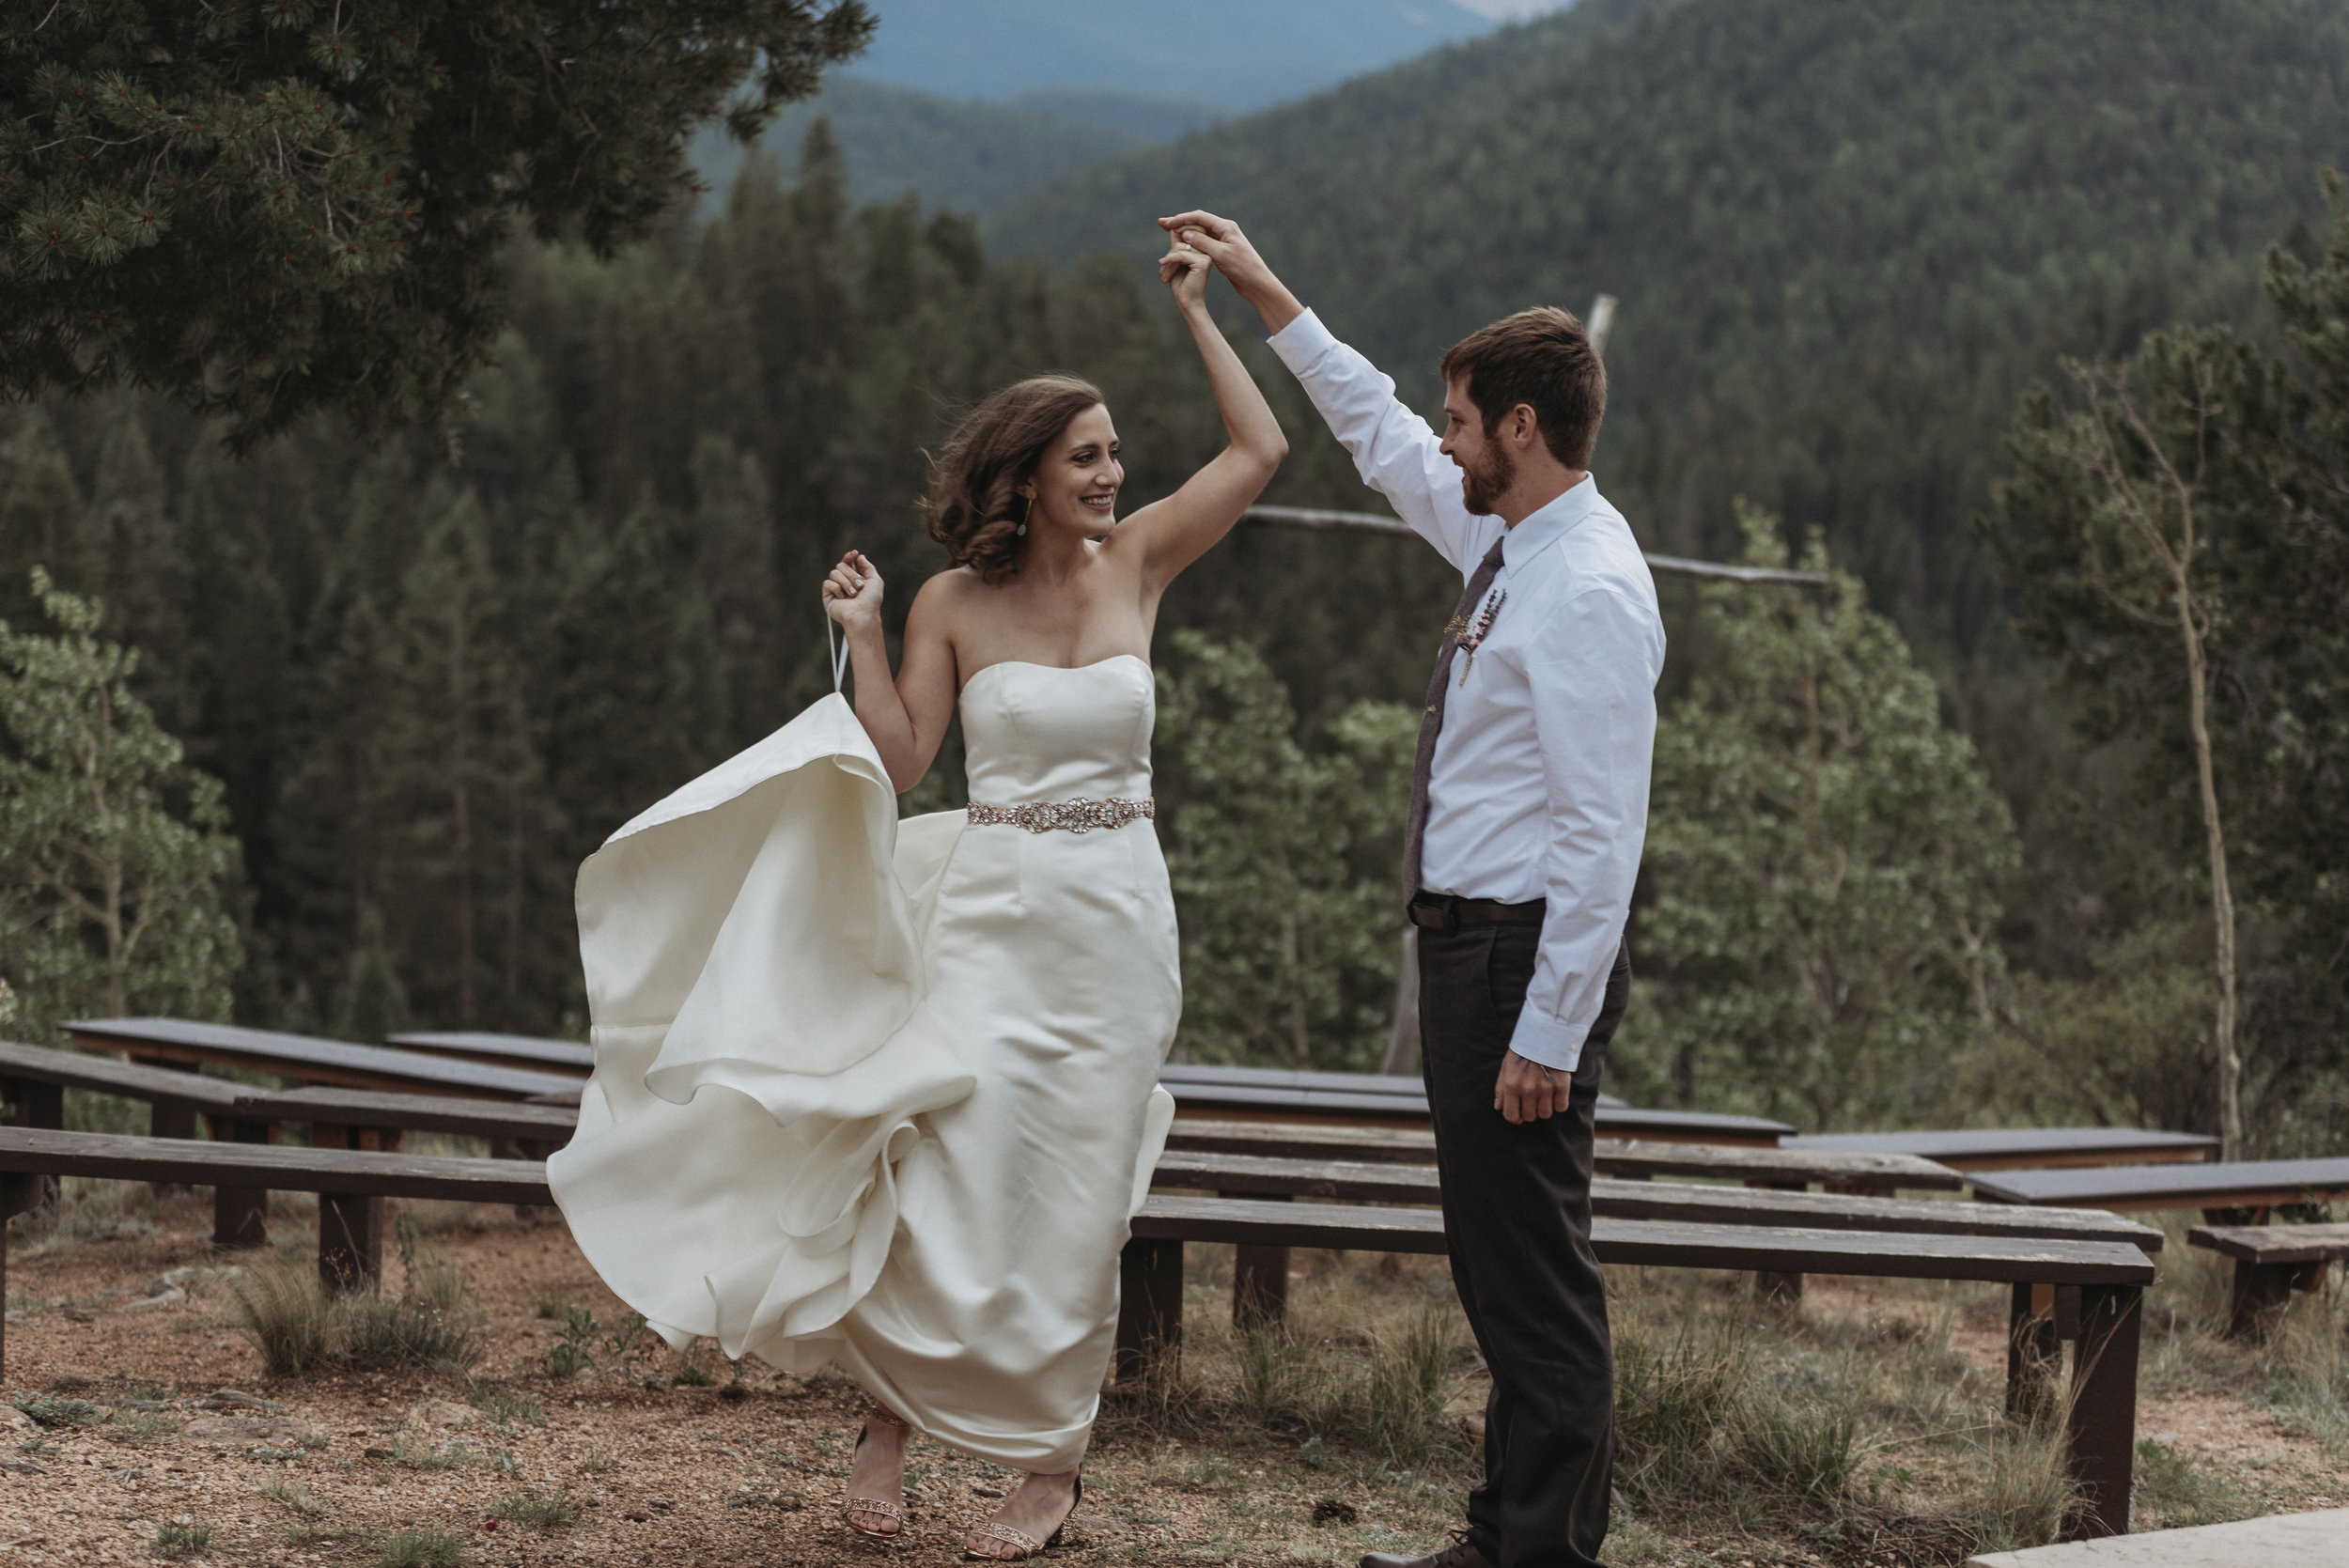 Breelle-Hilsenrath-Photography-Wedding-at-Rocky-Mountain-Mennonite-Camp.jpg